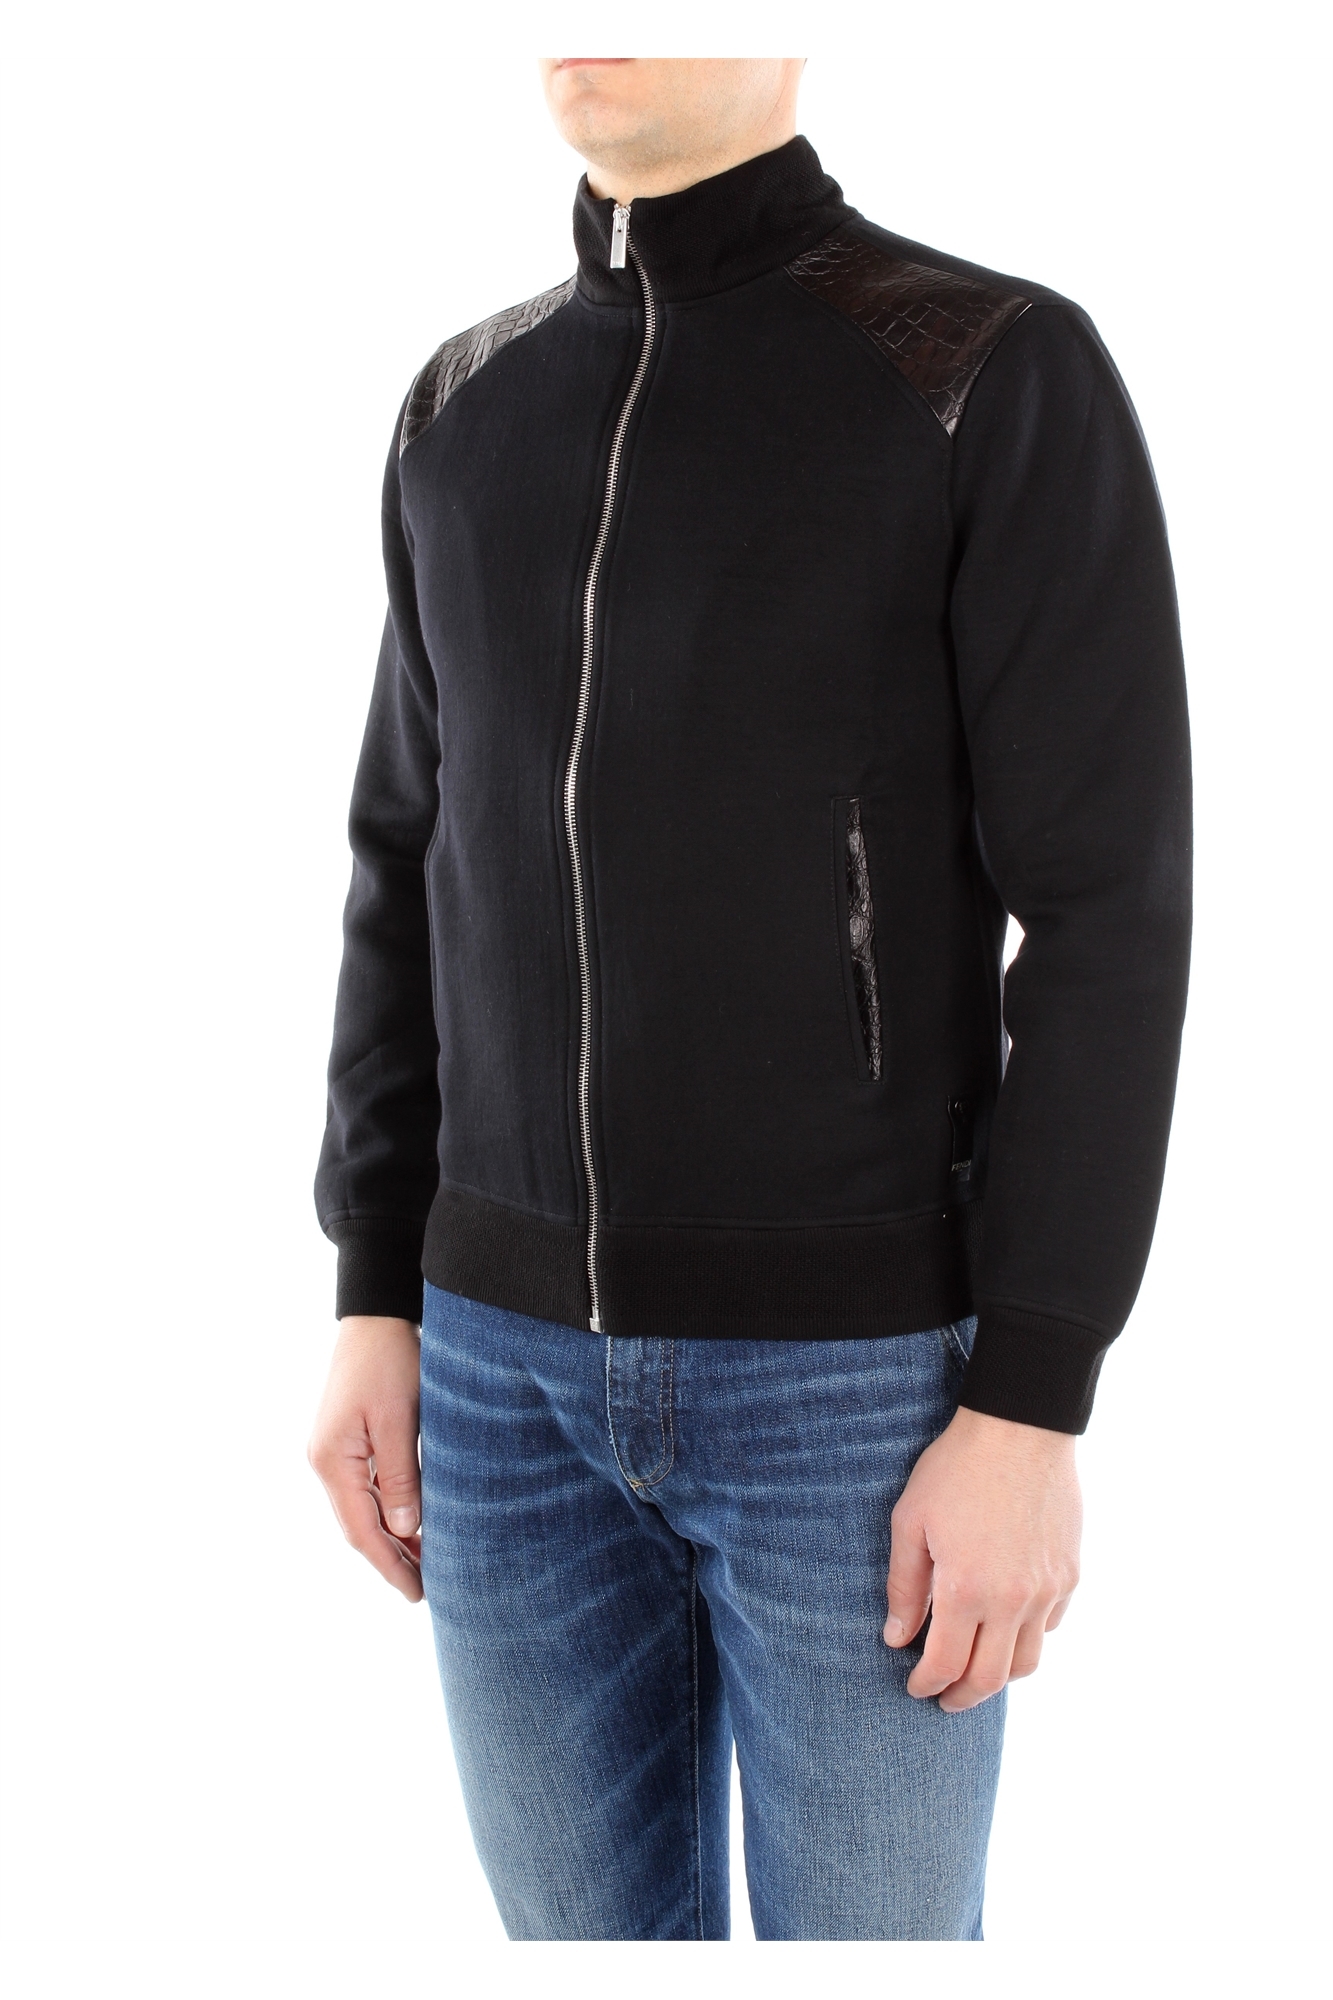 Find great deals on eBay for black cotton sweater. Shop with confidence.